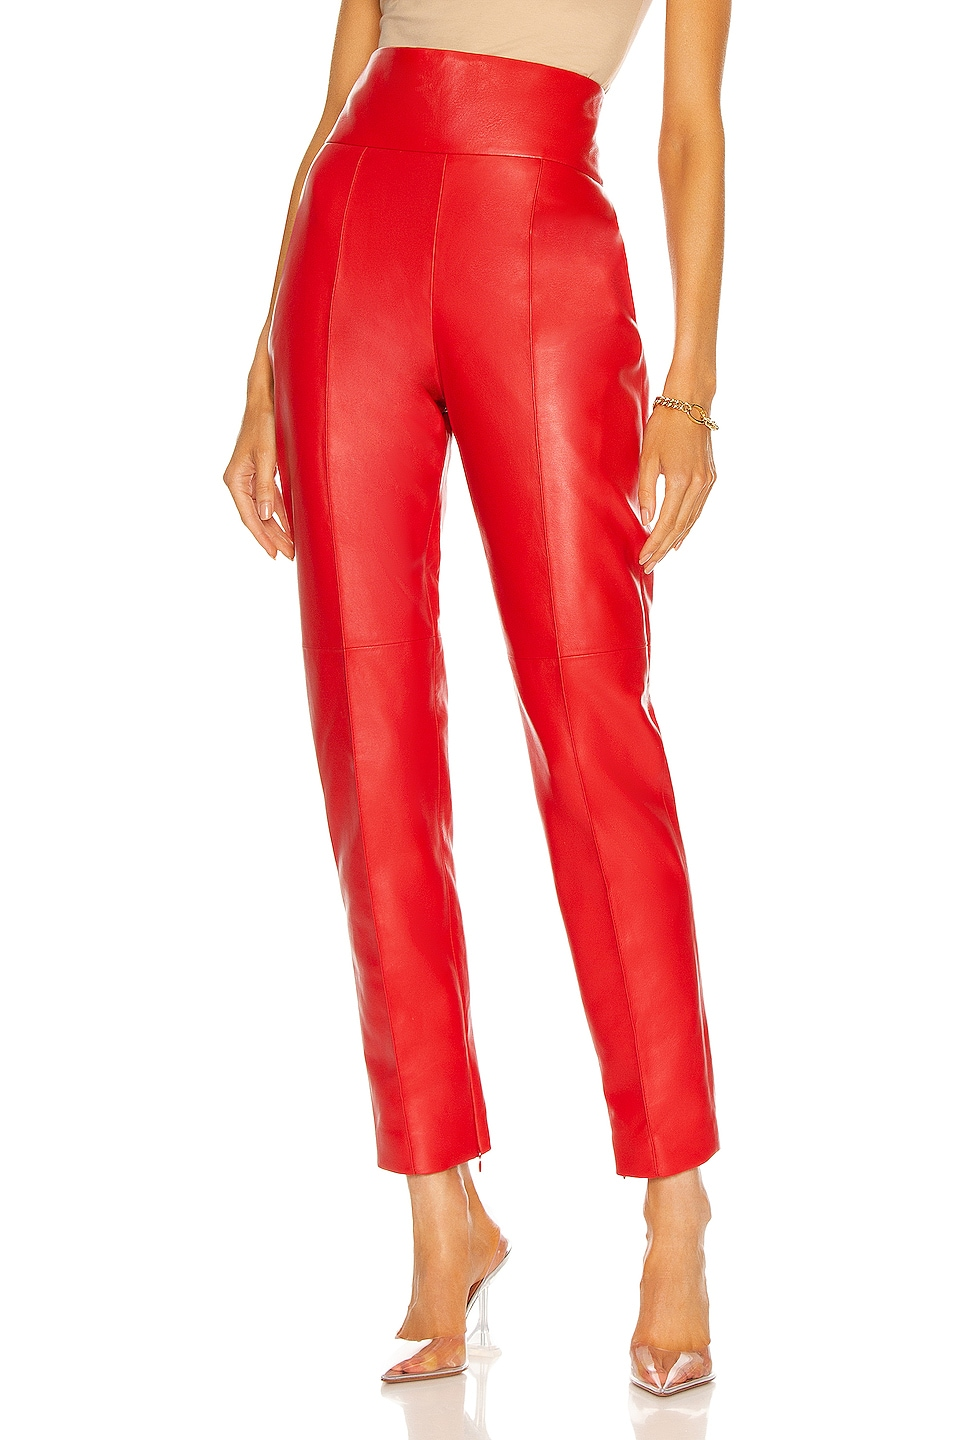 Image 1 of Alexandre Vauthier Leather Pant in Red